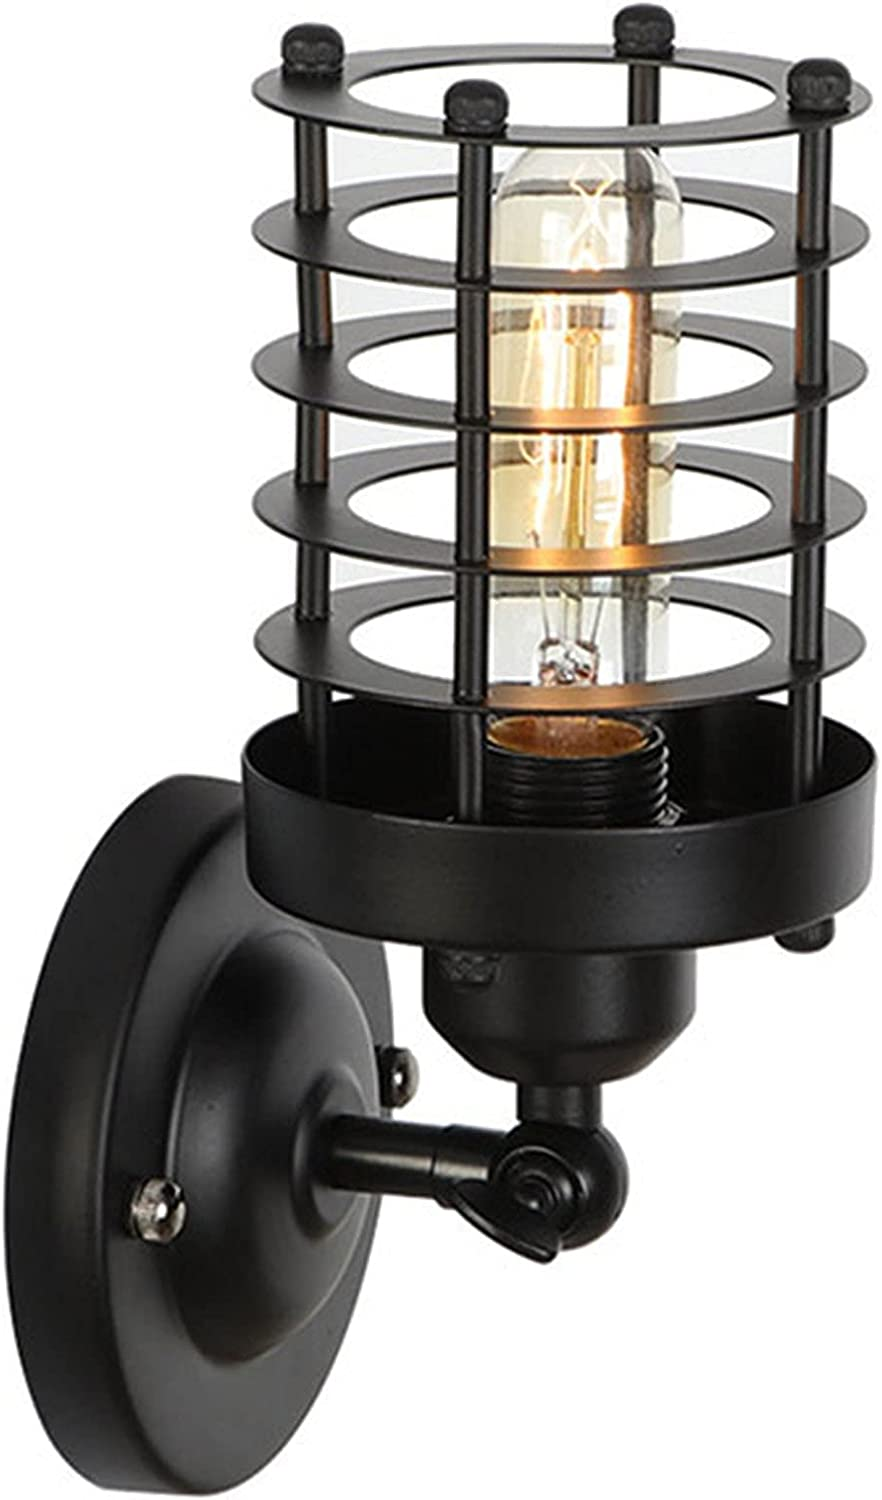 Adlereyire Vintage Wall Lamp Industrial Rust Retro Lighting We OFFer at cheap prices Loft Indianapolis Mall